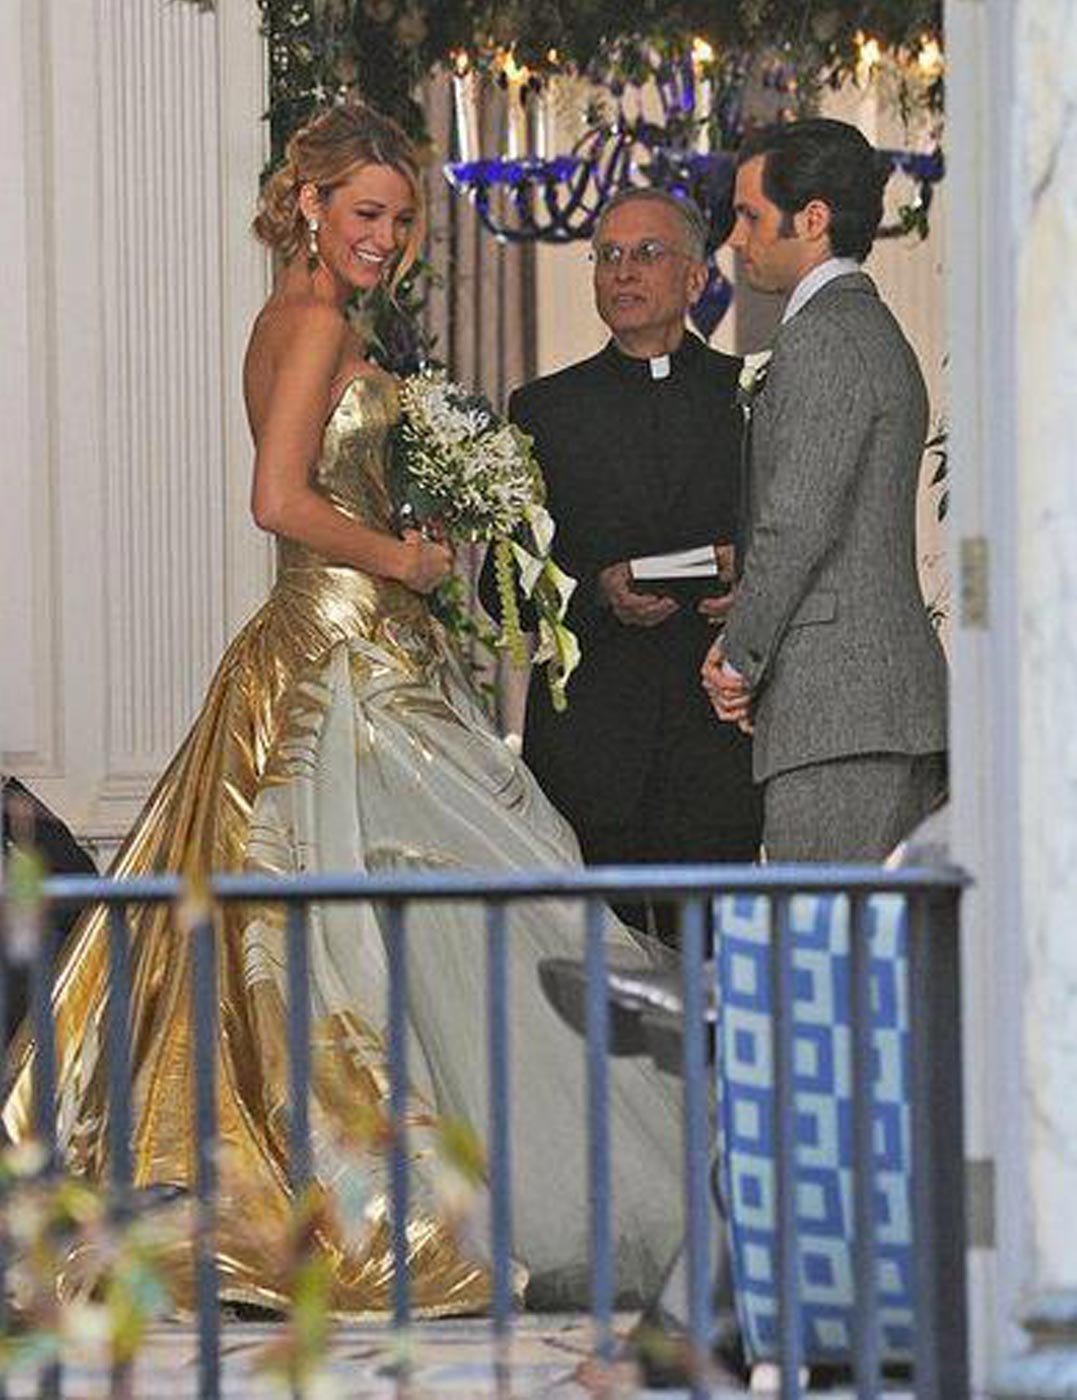 Blake lively is snapped in gold georges chakra for gossip for Georges chakra gold wedding dress price